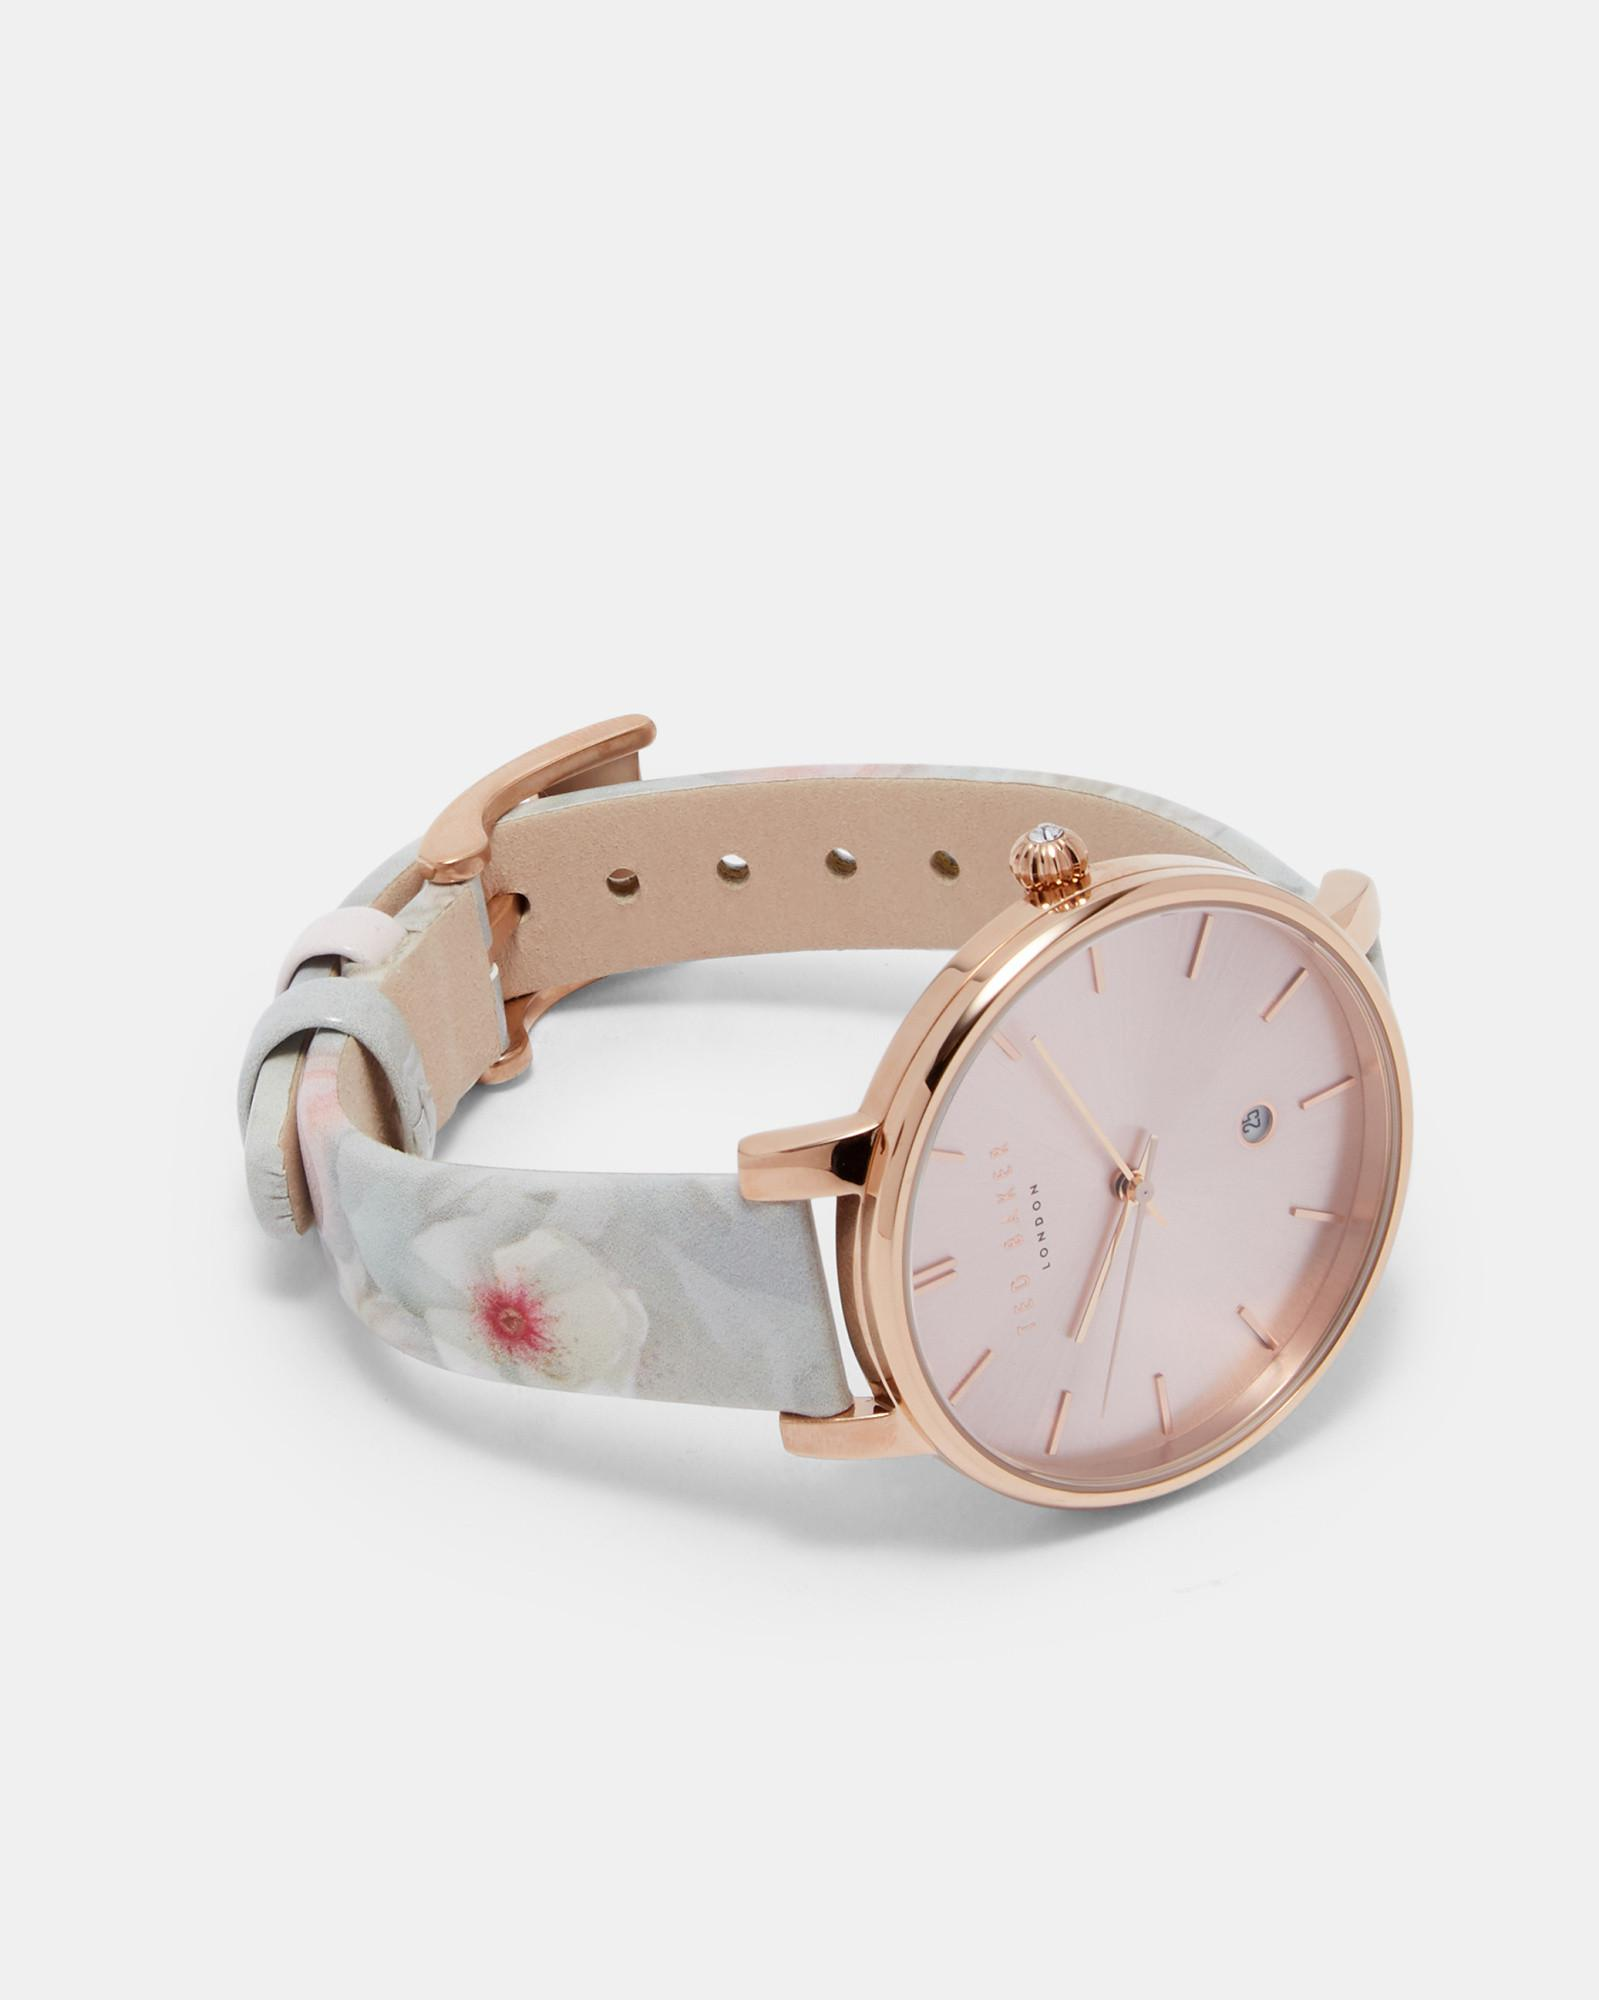 516b9c185862 Ted Baker Chelsea Grey Leather Strap Watch in Gray - Lyst